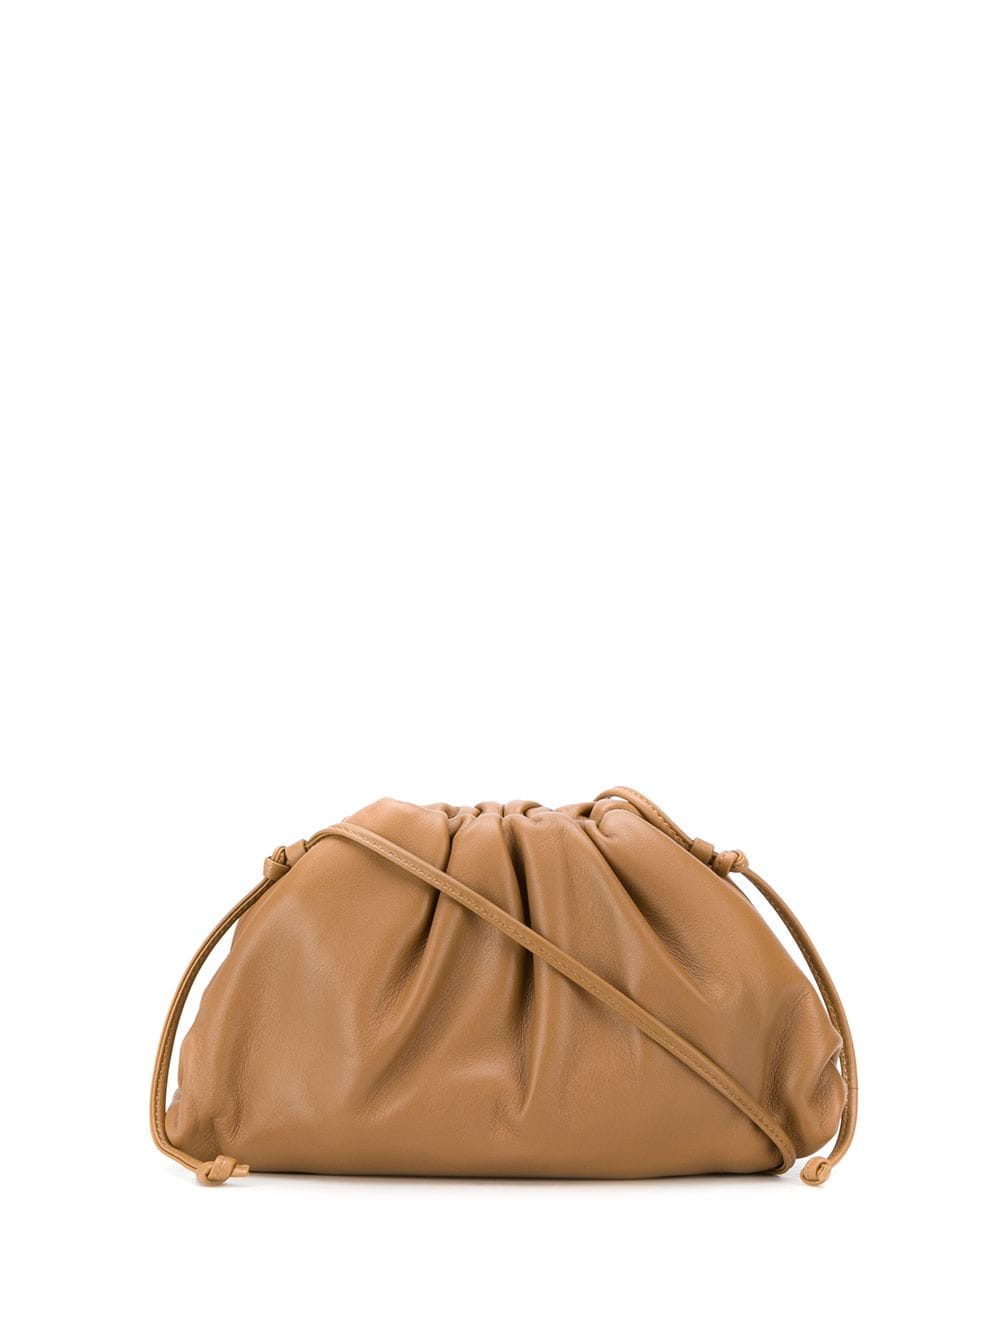 The Pouch Leather Mini Bag